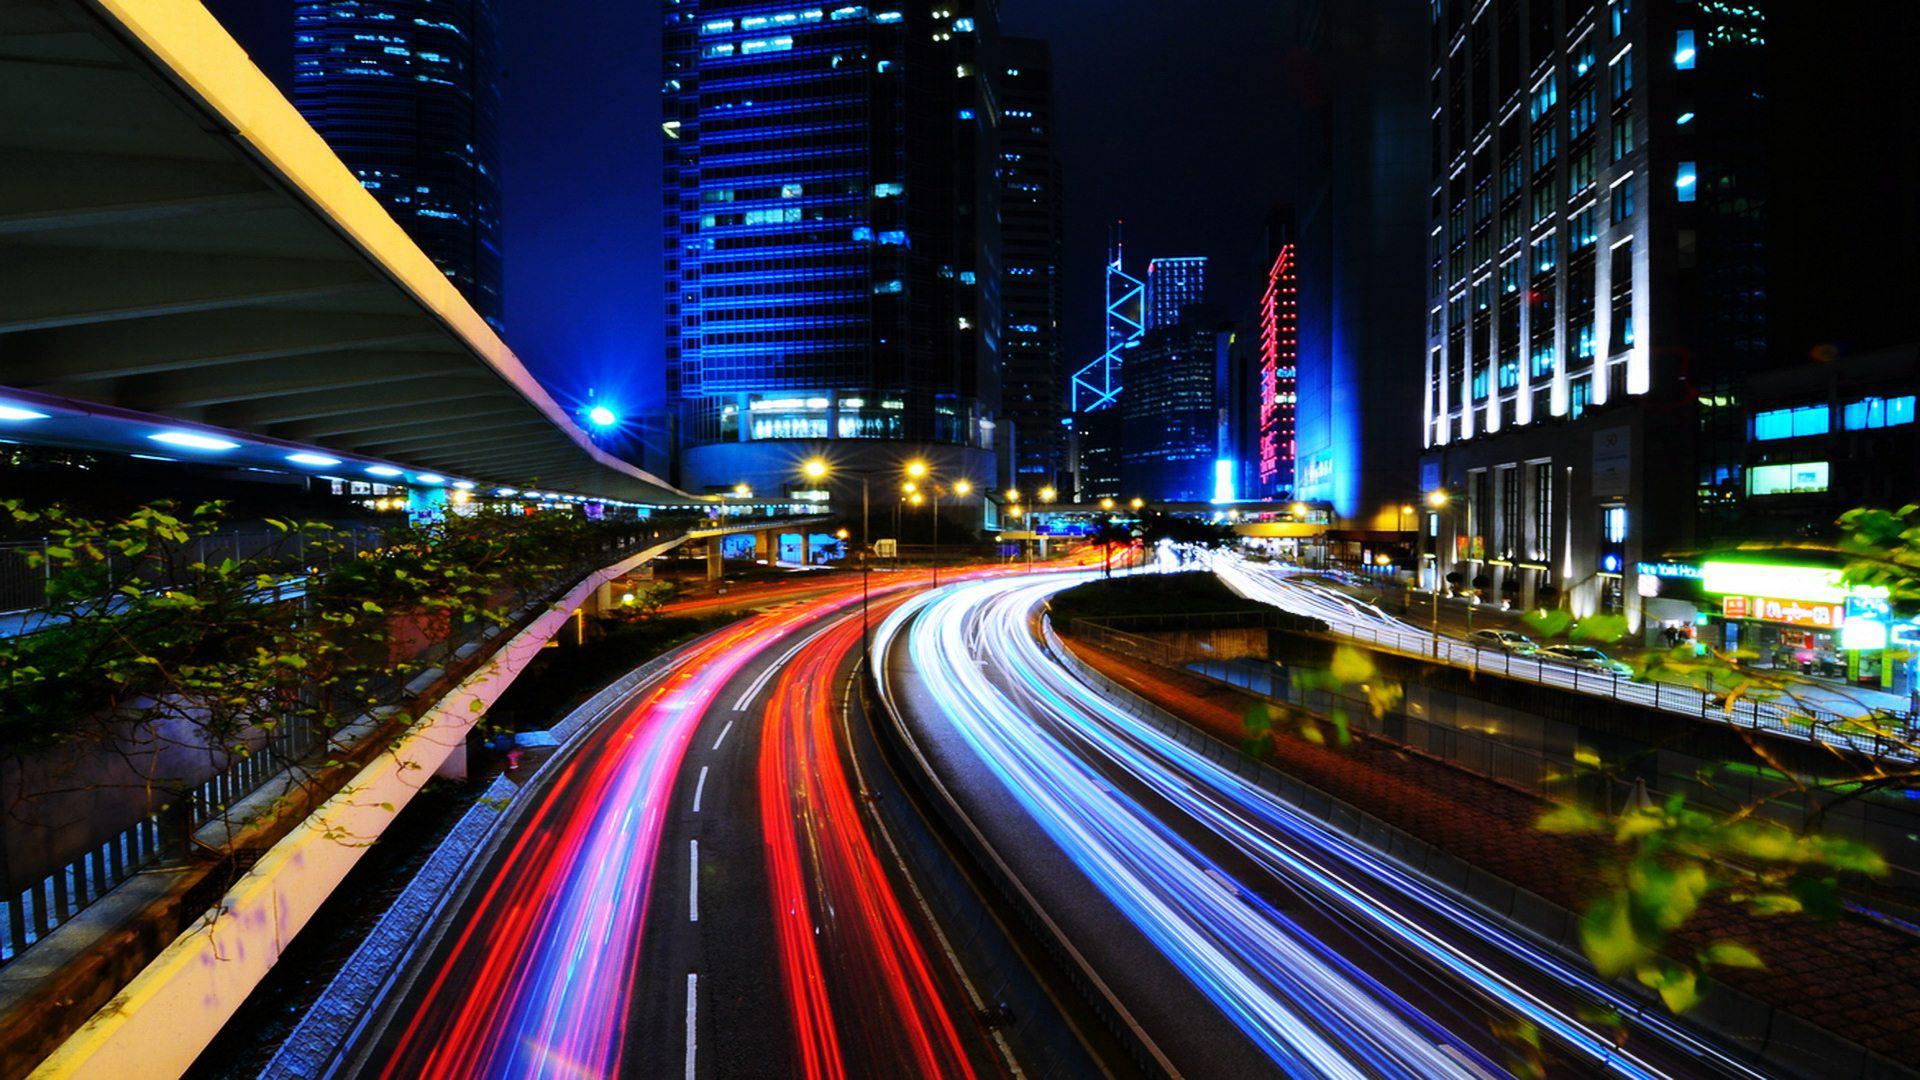 3d Moving Wallpapers City Lights Light Trails In City Free Desktop Wallpaper Travel And